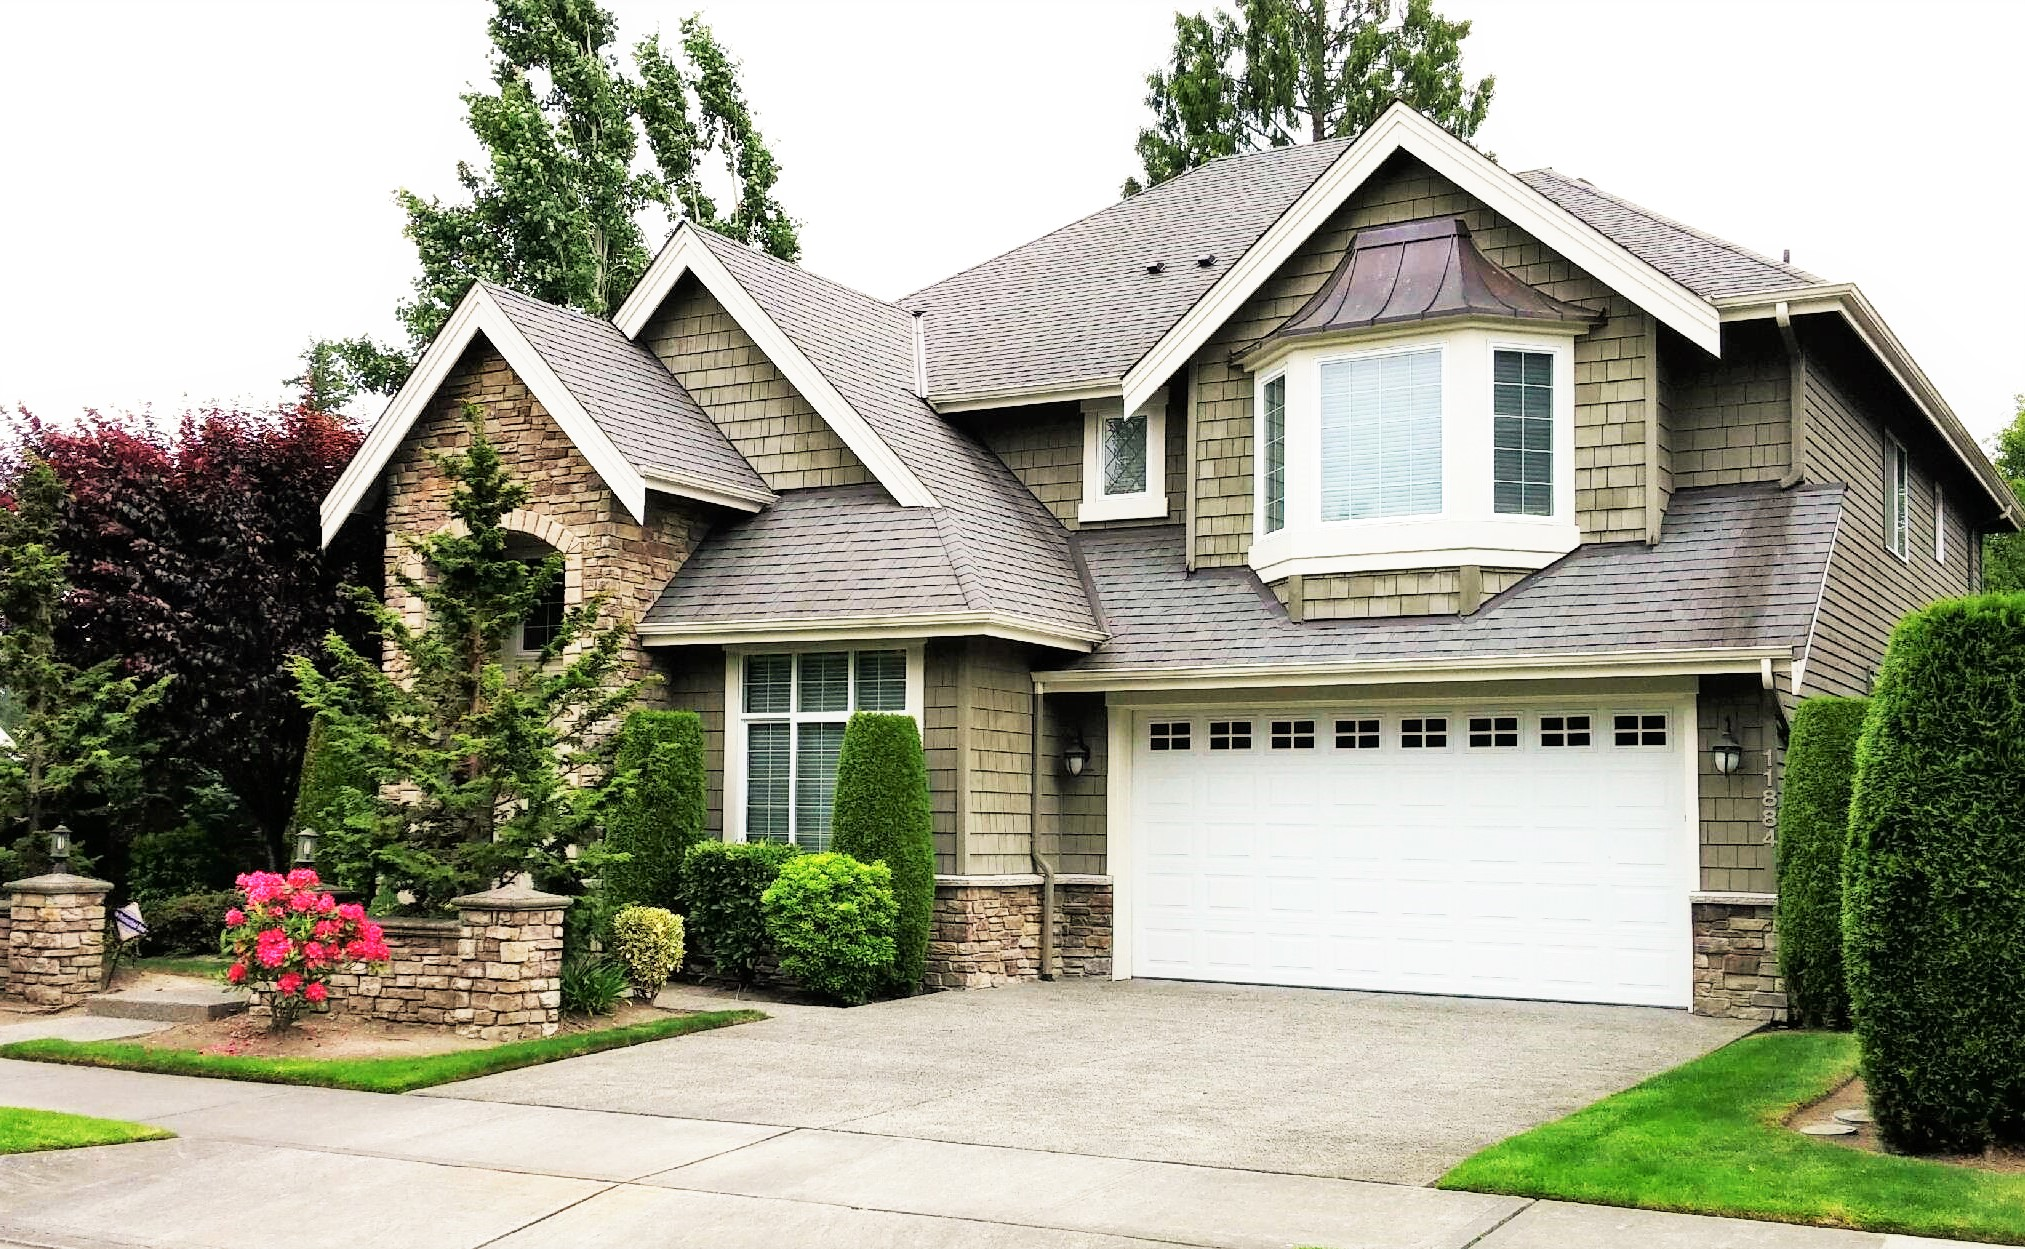 Home Owner Policy in Klamath Falls, OR